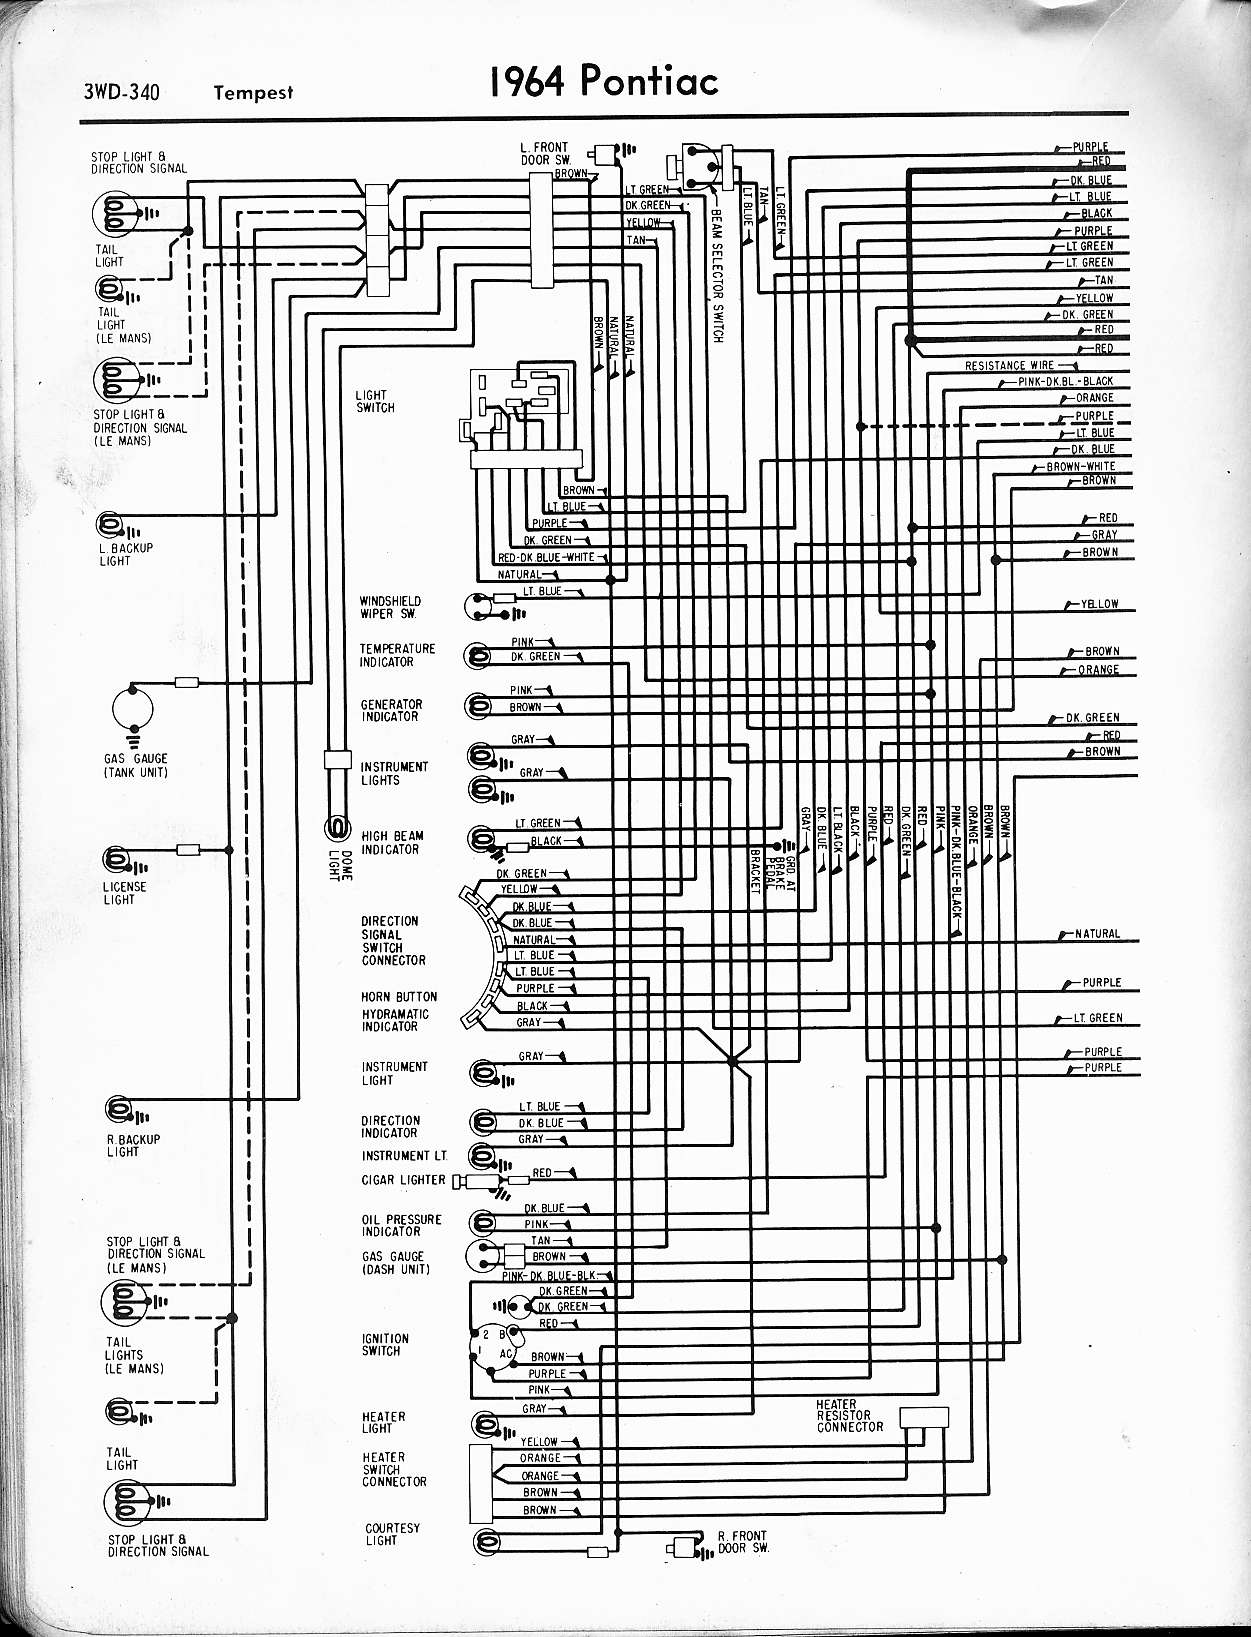 ez wiring diagram 1966 gto | wiring library 1966 gto fuse panel diagram 1966 corvette fuse panel diagram #4